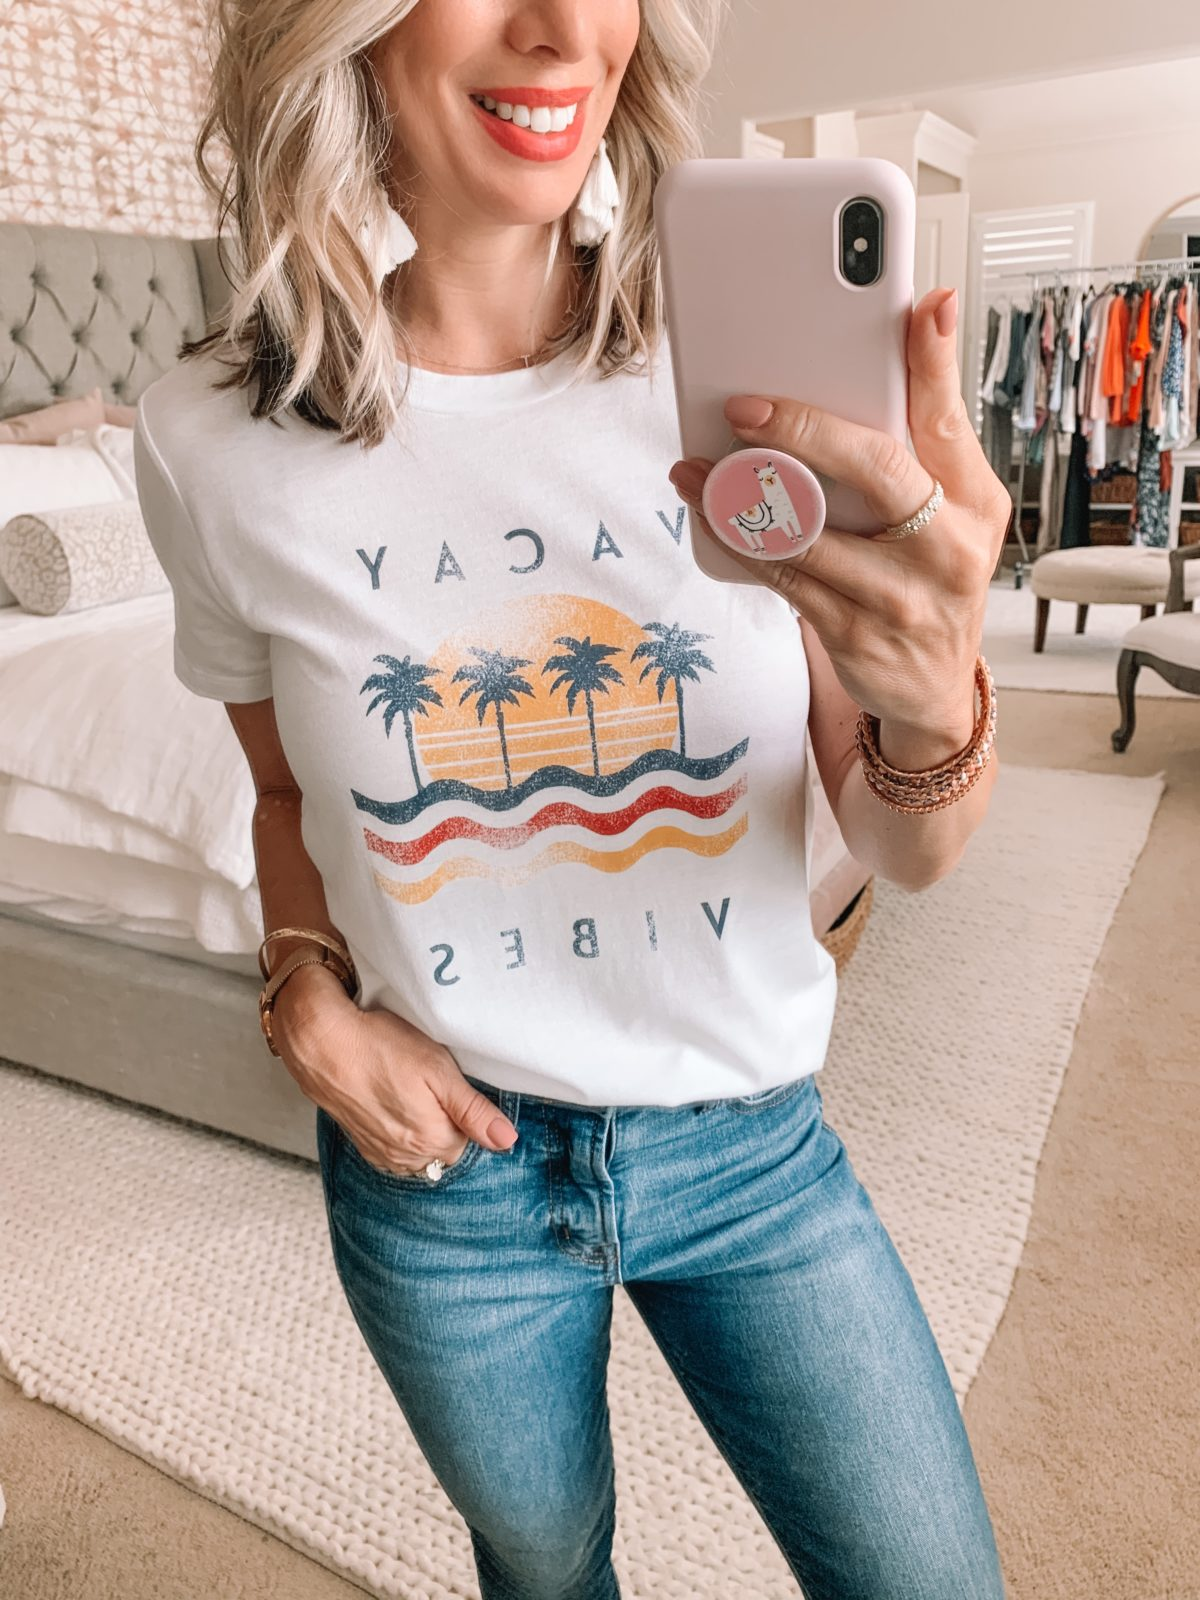 Dressing Room Finds Nordstrom & LOFT, Vacay Tee, Skinny Jeans